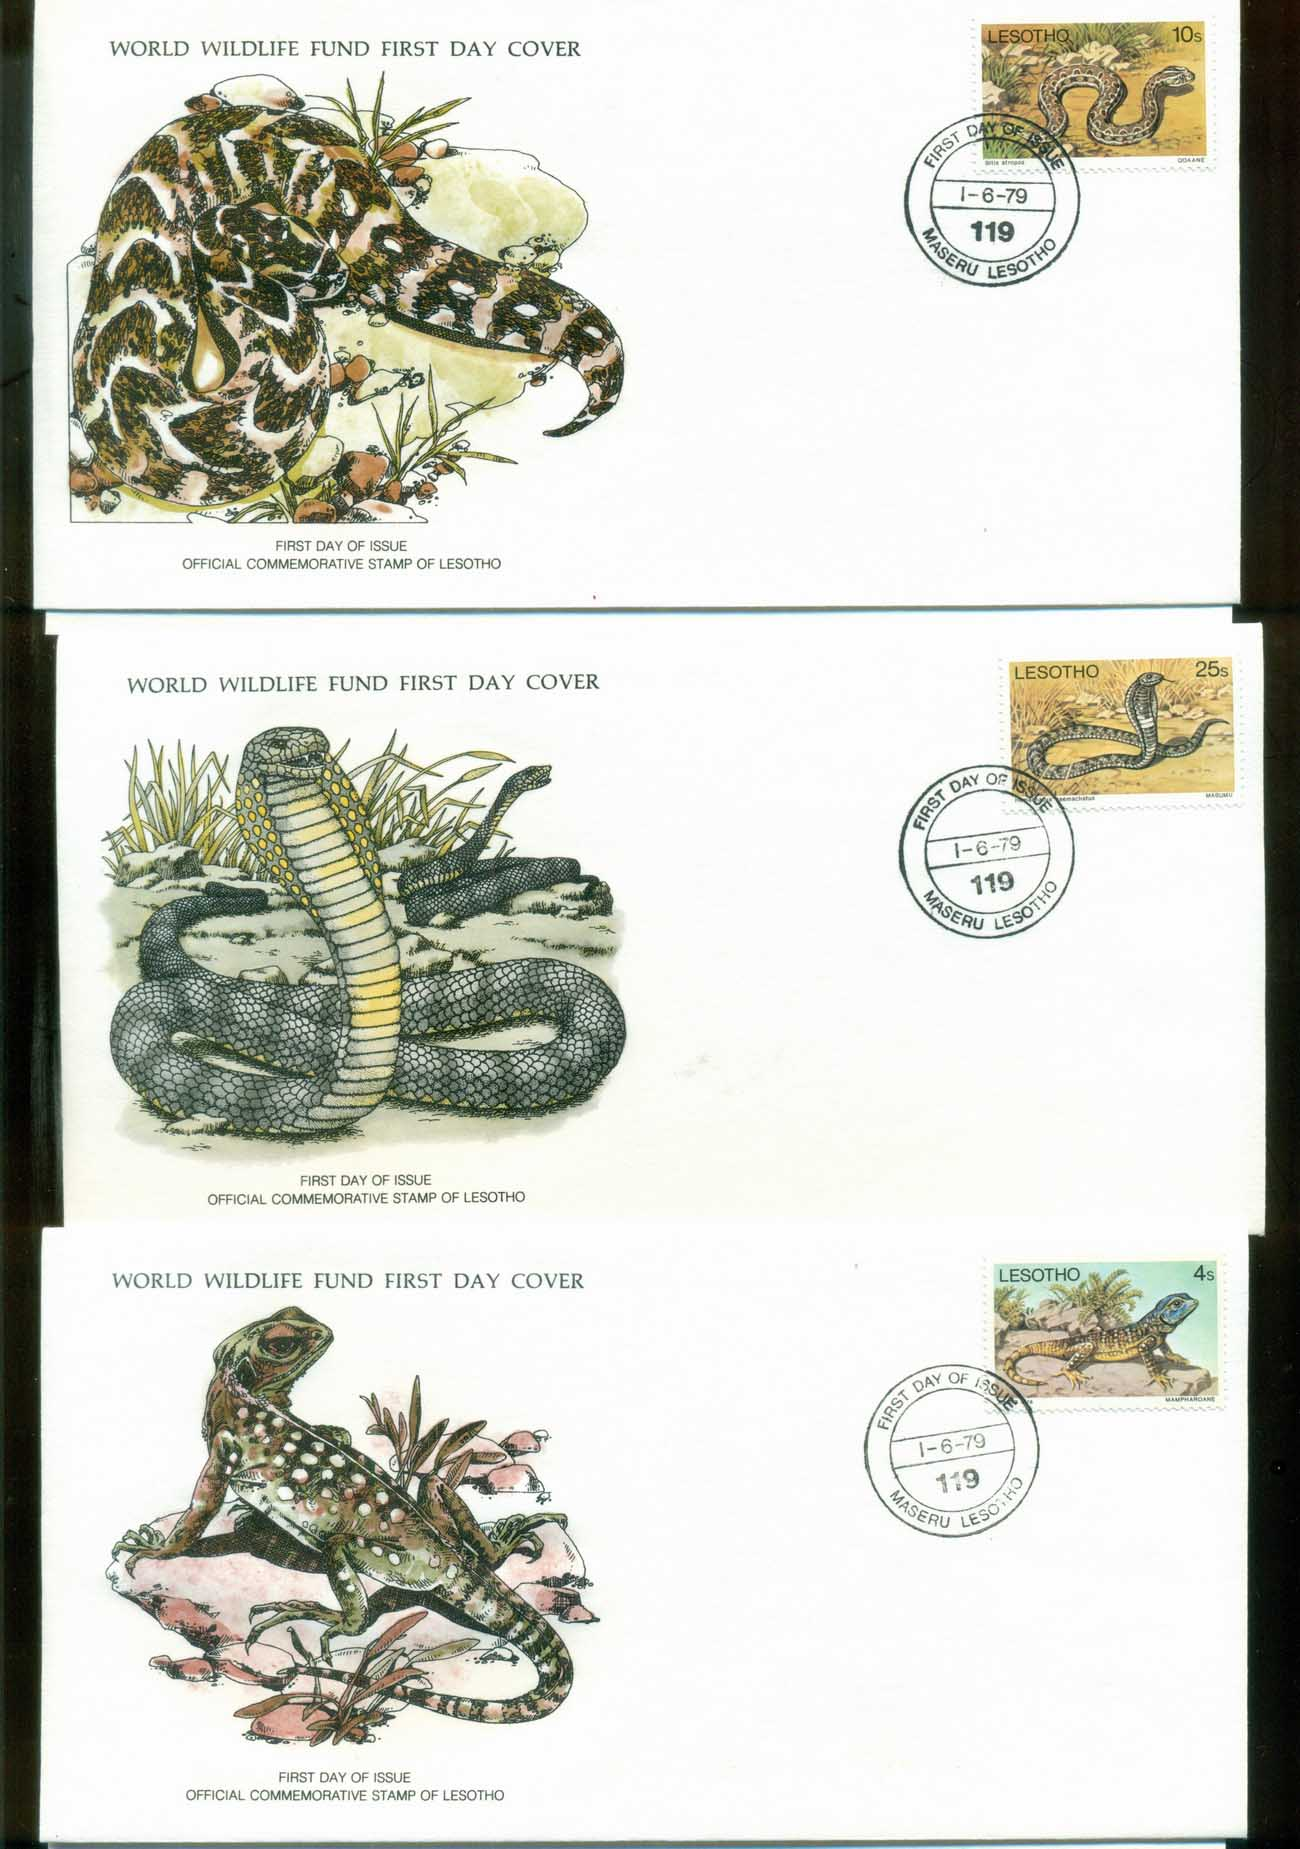 Lesotho 1979 WWF,Reptiles, Adder, RinghalsLizard, Franlkin Mint (with inserts) 3xFDC lot79635